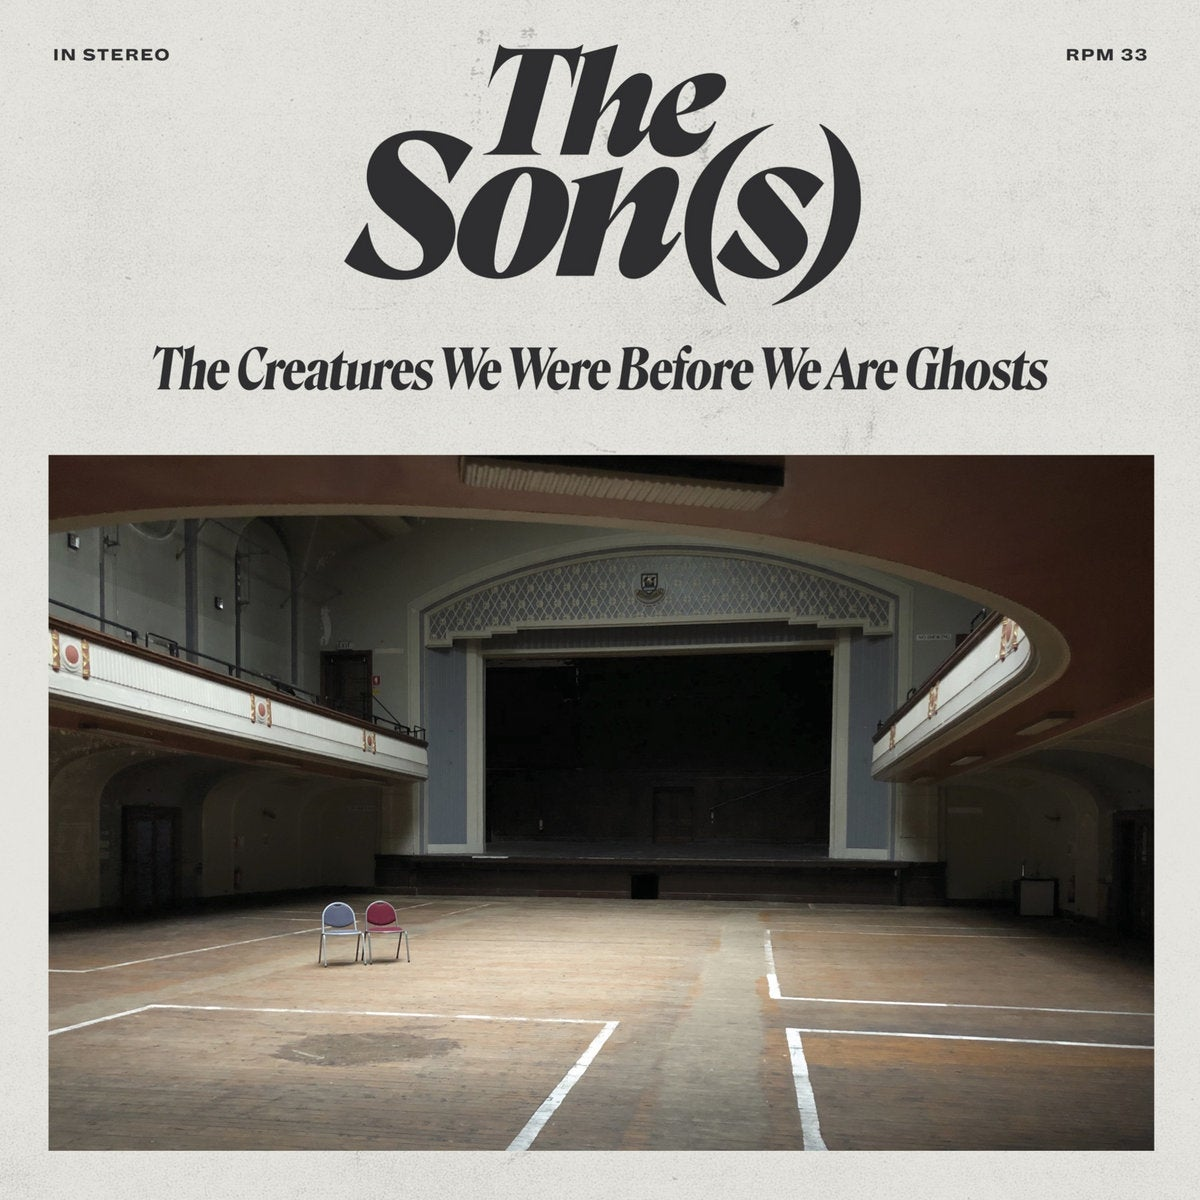 The Son(s) - The Creatures We Were Before We Are Ghosts